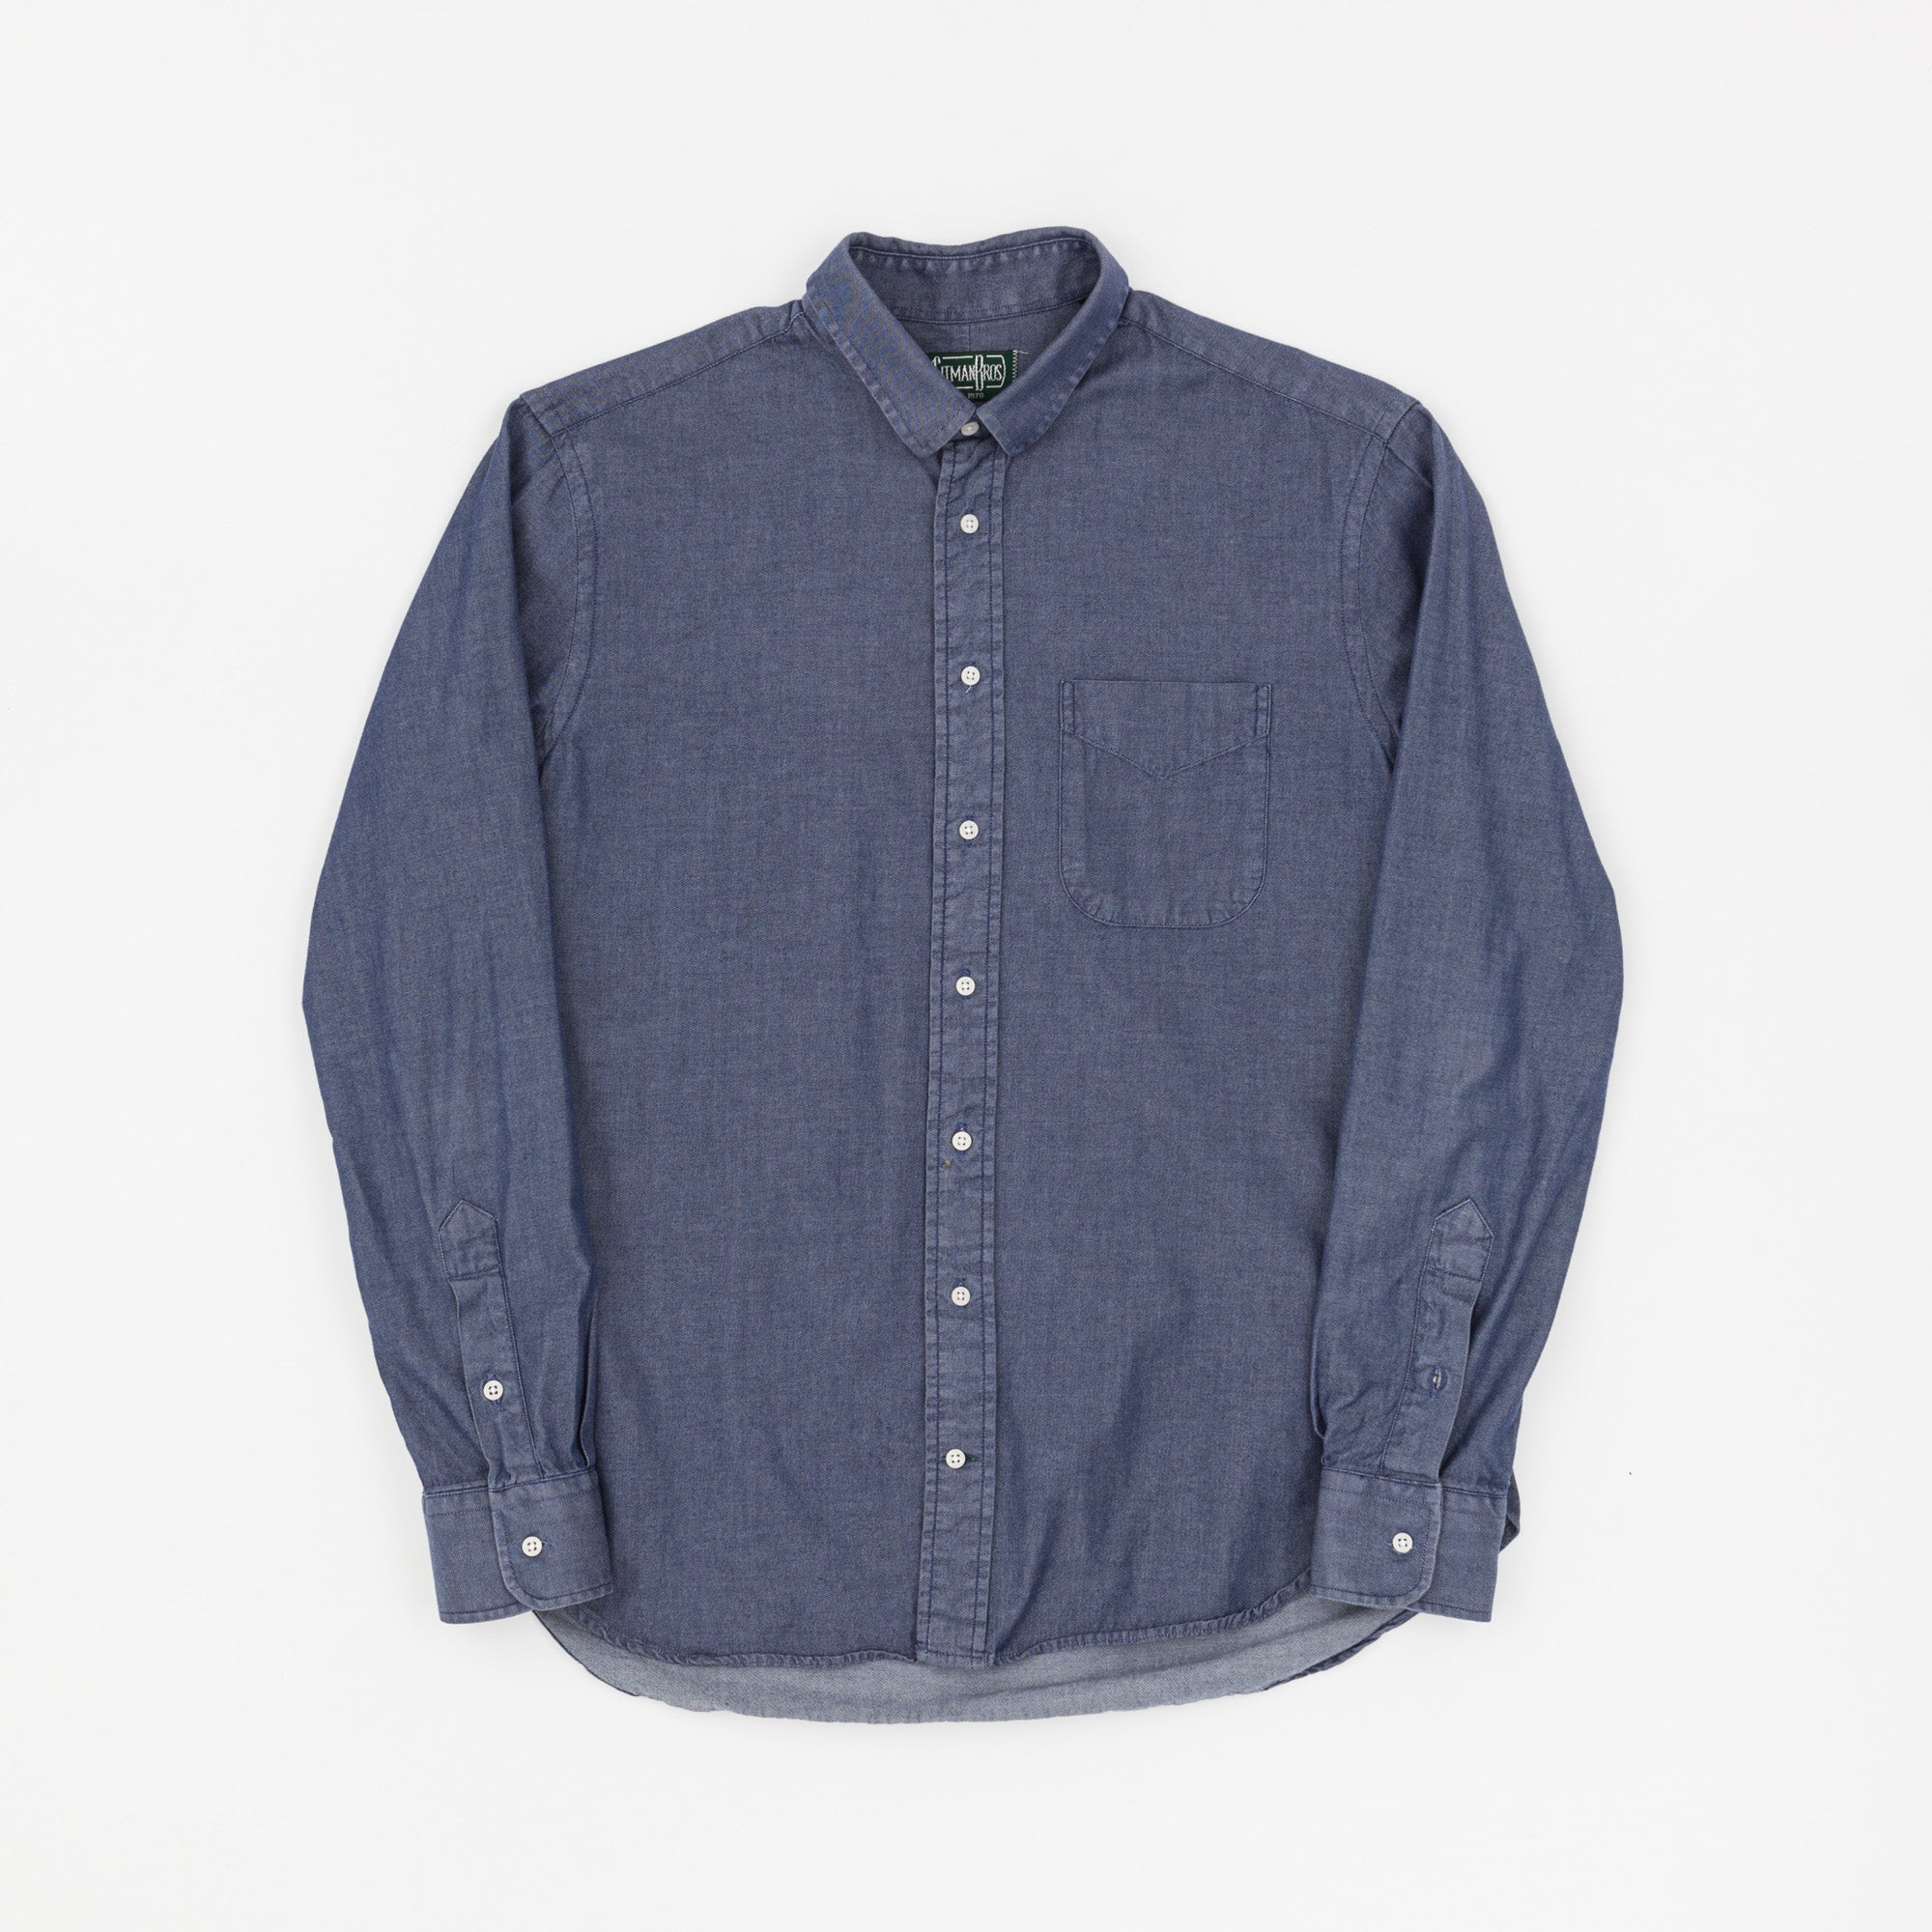 Gitman Vintage Chambray Shirt